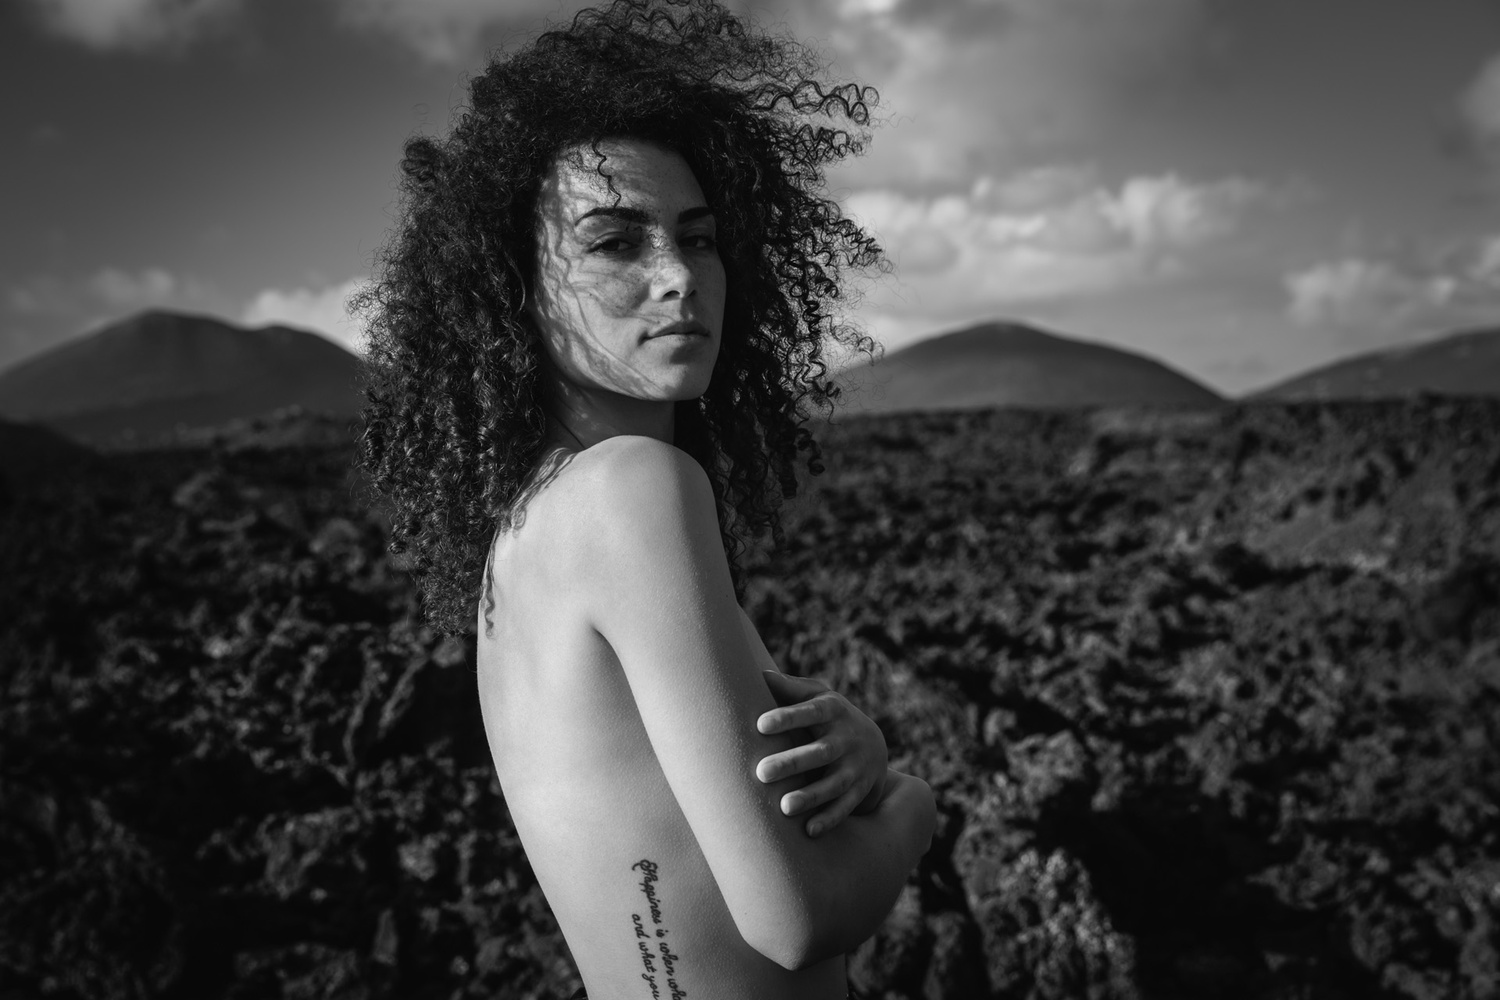 Cannelle - Lanzarote - Canary Islands by Cedric TOSONI